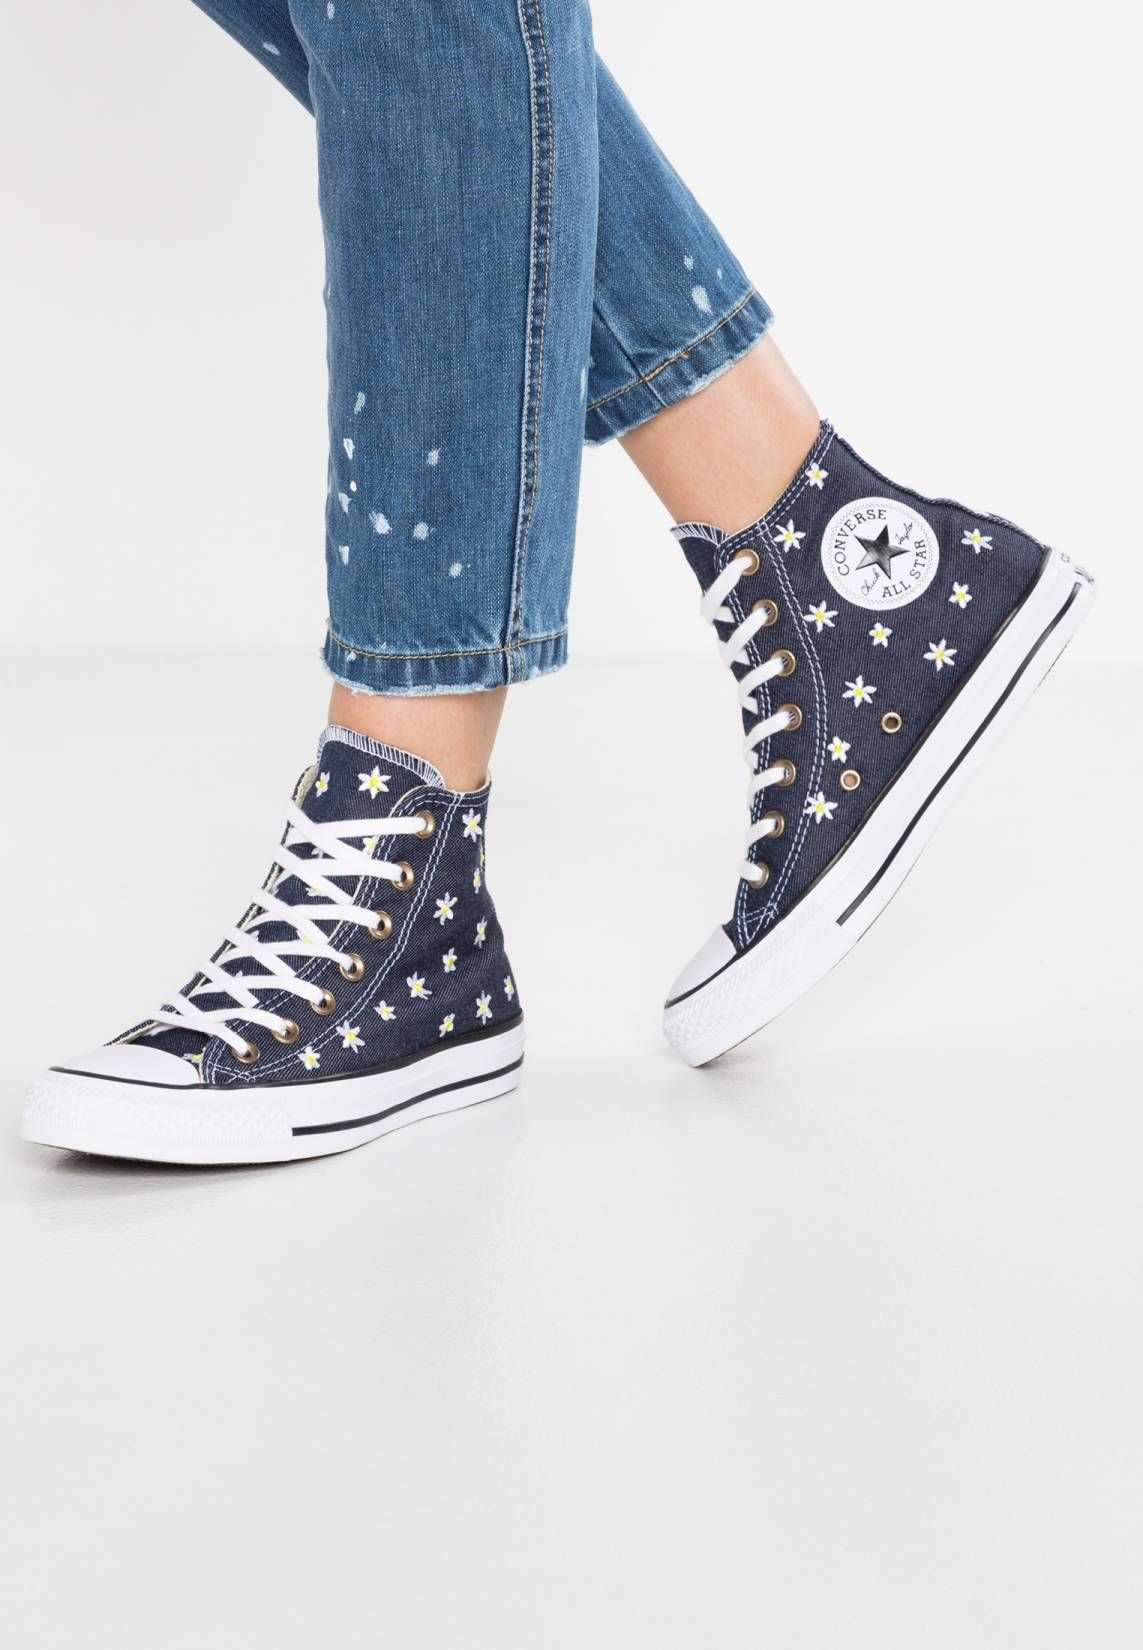 Converse Chuck Taylor All Star Sneaker High Navy Fresh Yellow White Sohle Kunststoff Decksohle Textil Innenmaterial Chuck Taylors Sneaker Sneaker High